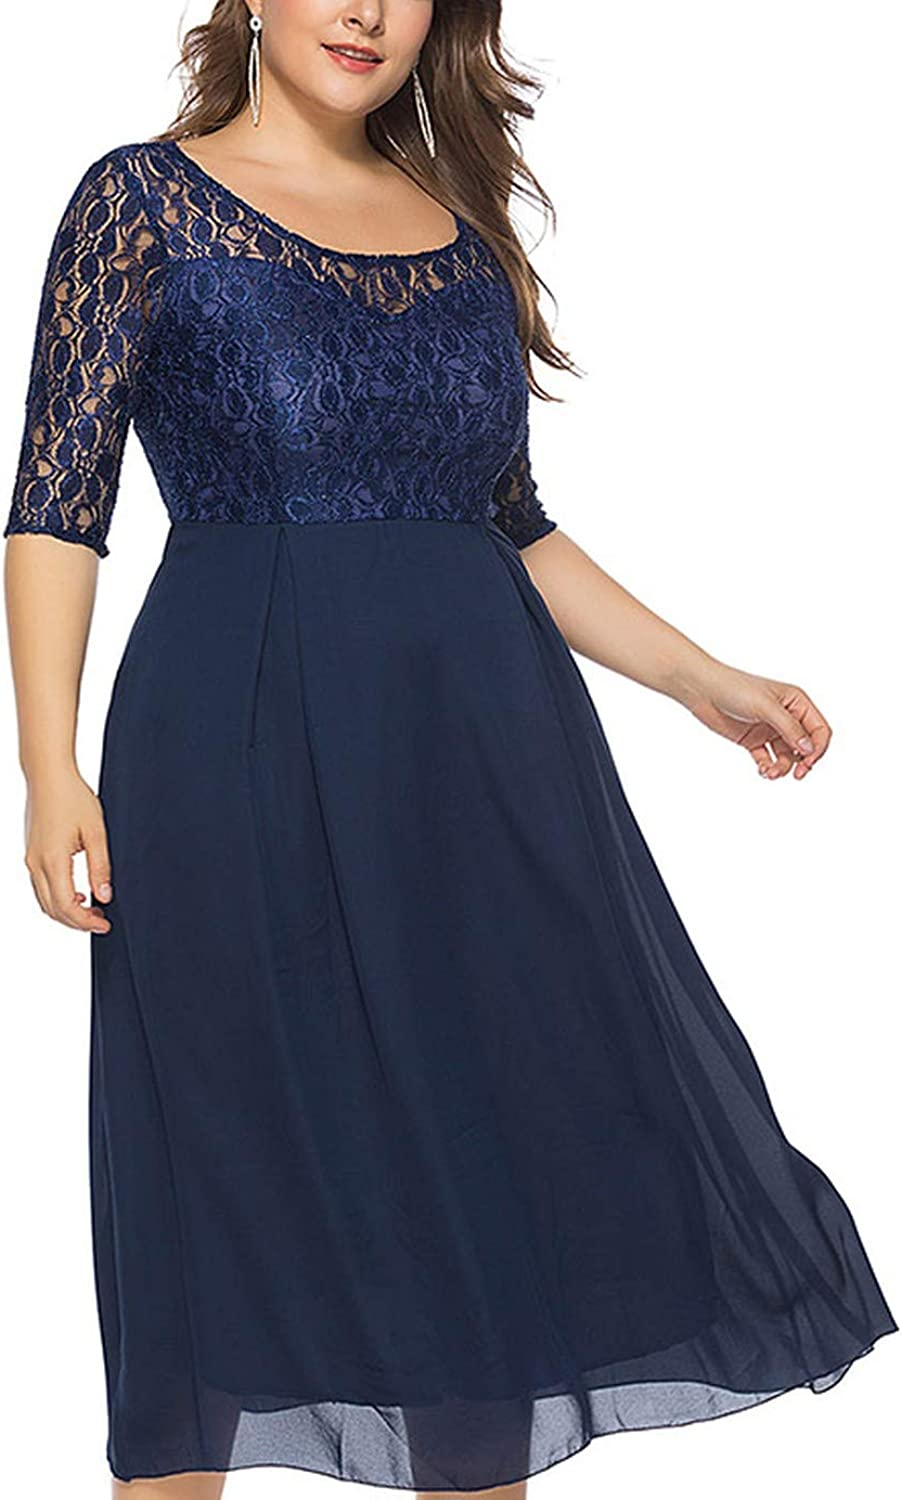 Rather be Plus Size Club Midi Formal Dress Women Clothing Fashion Word Elegant Office Two Piece Party Dresses